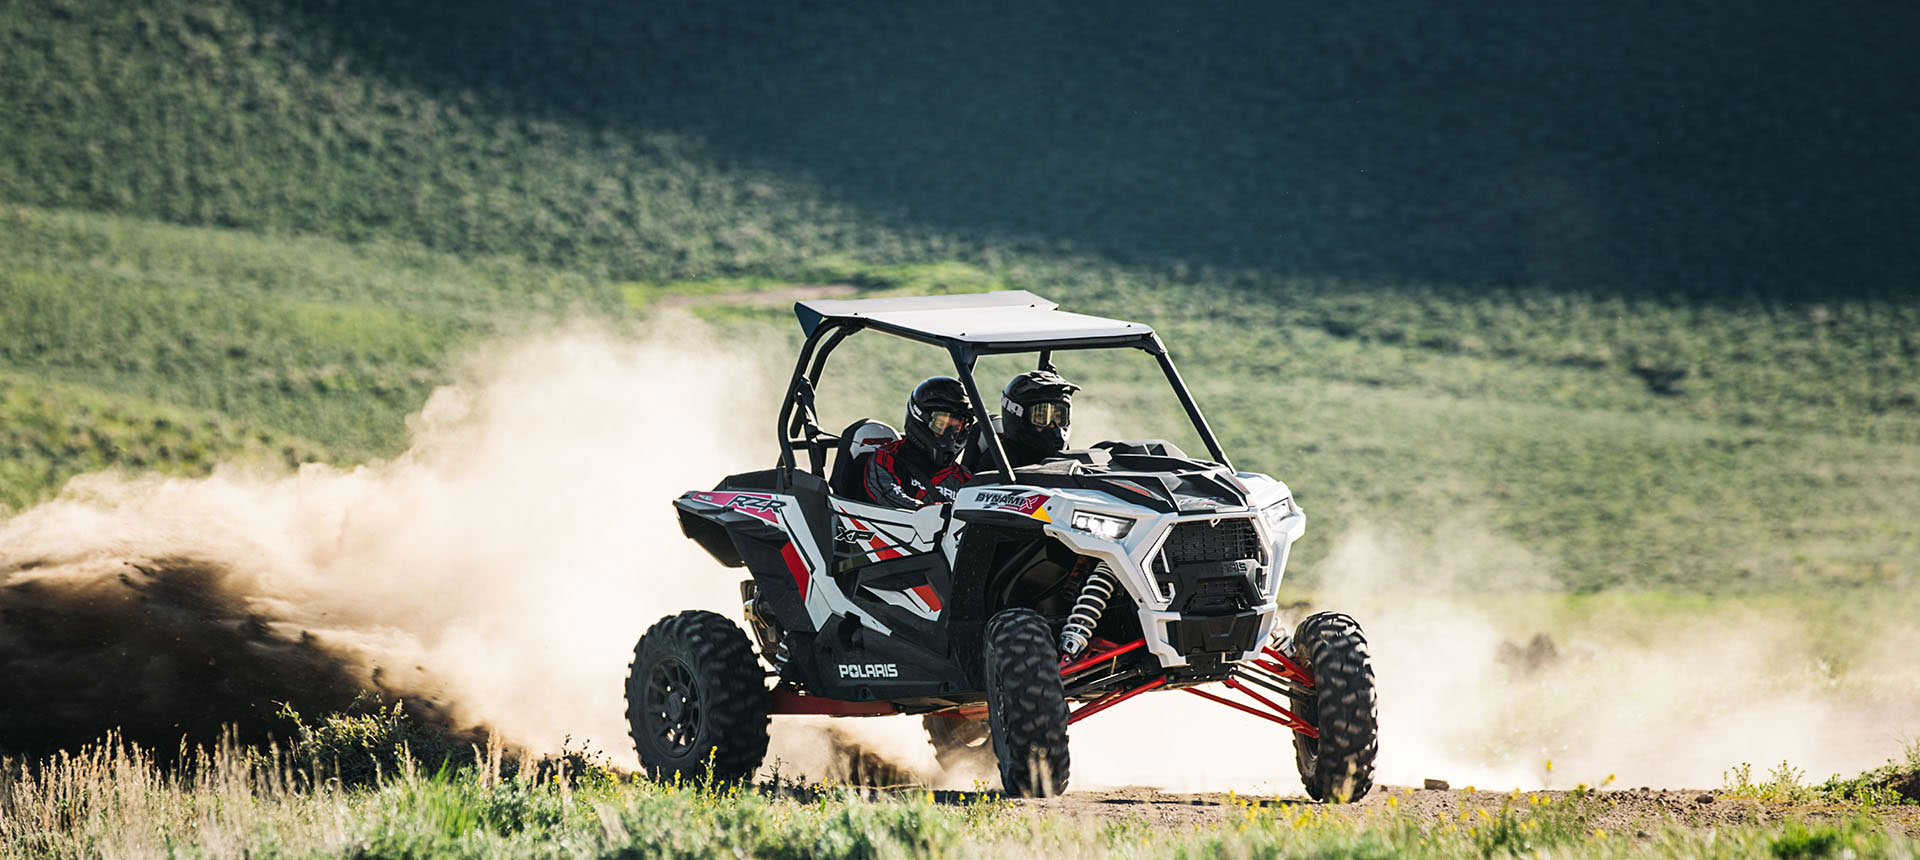 2019 Polaris RZR XP 1000 in Logan, Utah - Photo 3